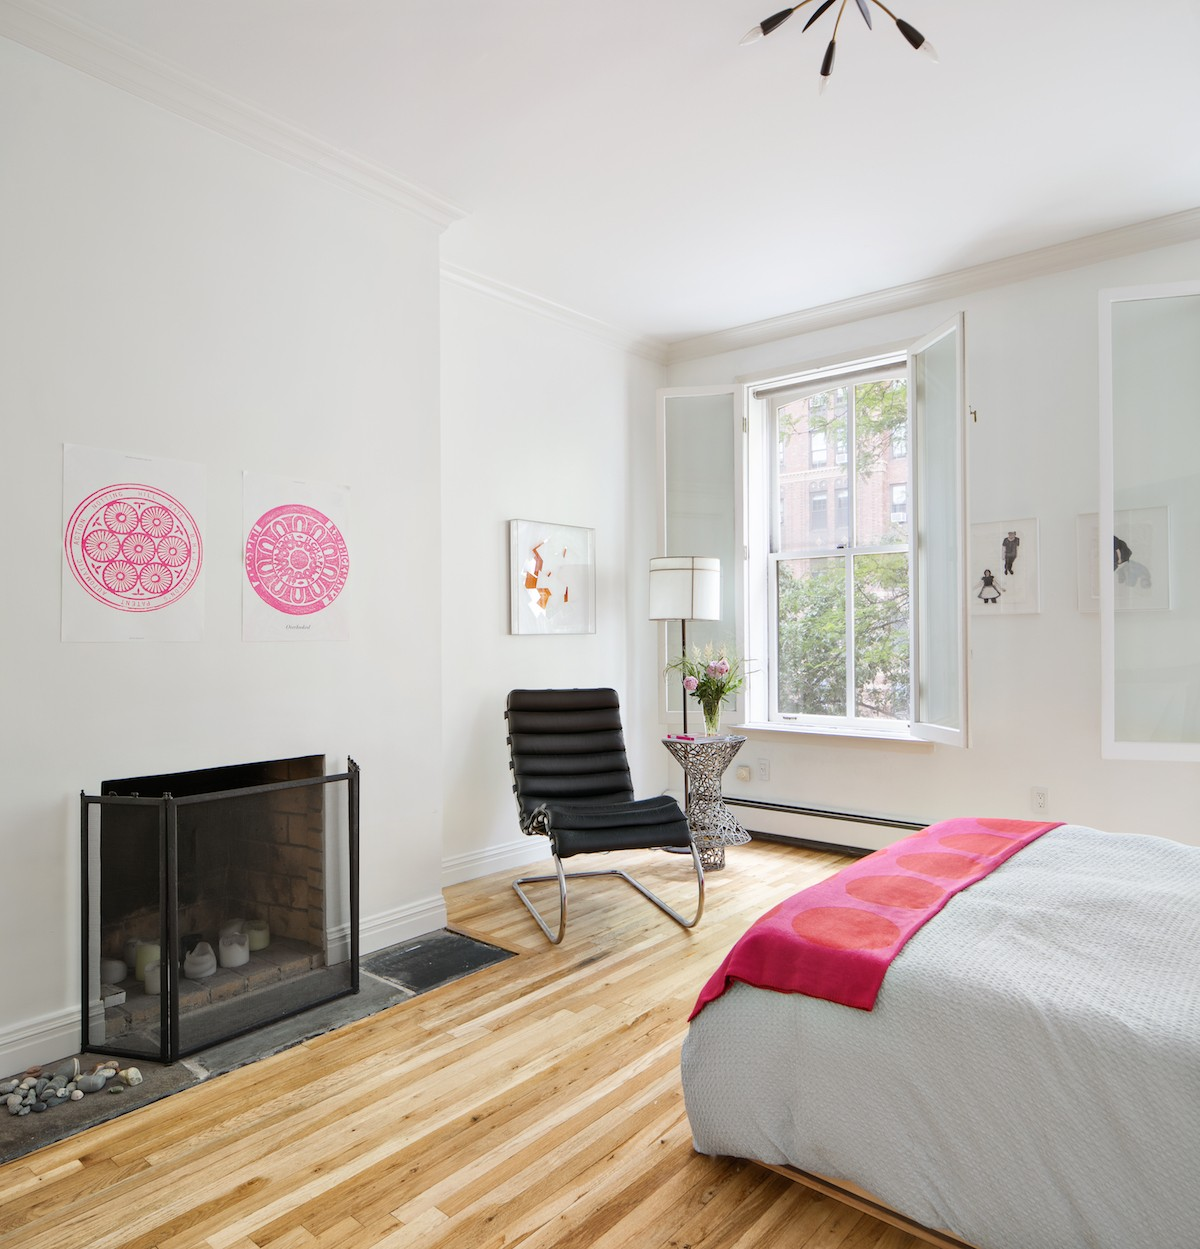 440 West 23rd Street, Cool listings, Chelsea, Fitzroy Townhouses, Clement Clark Moore, co-ops, outdoor space